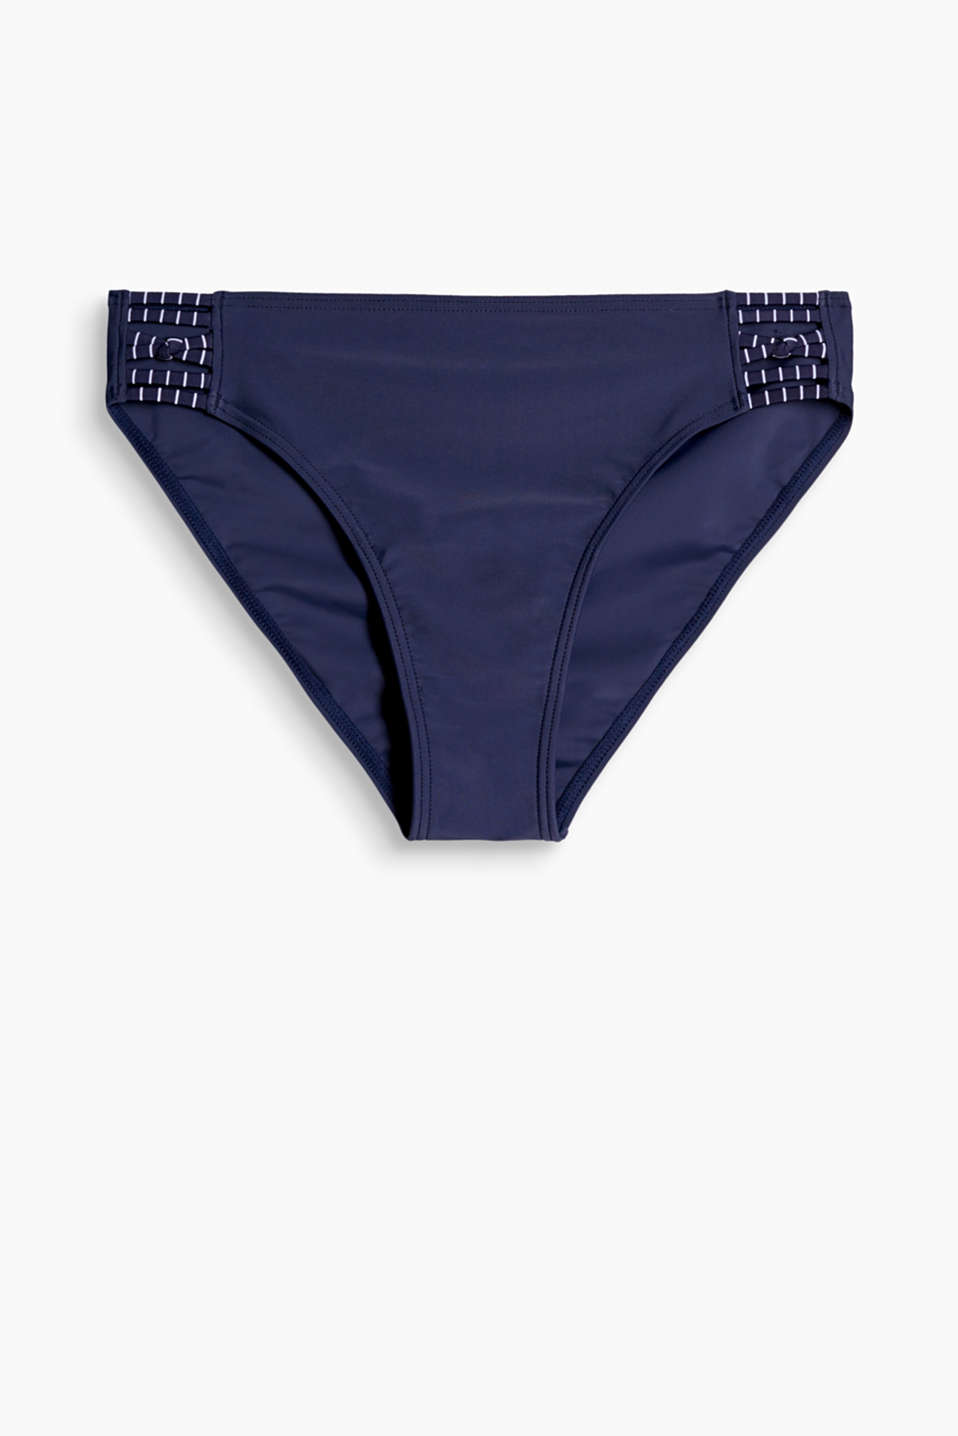 BRIGHTON collection - comfortable midi bikini bottoms with striped elastic ties at the sides